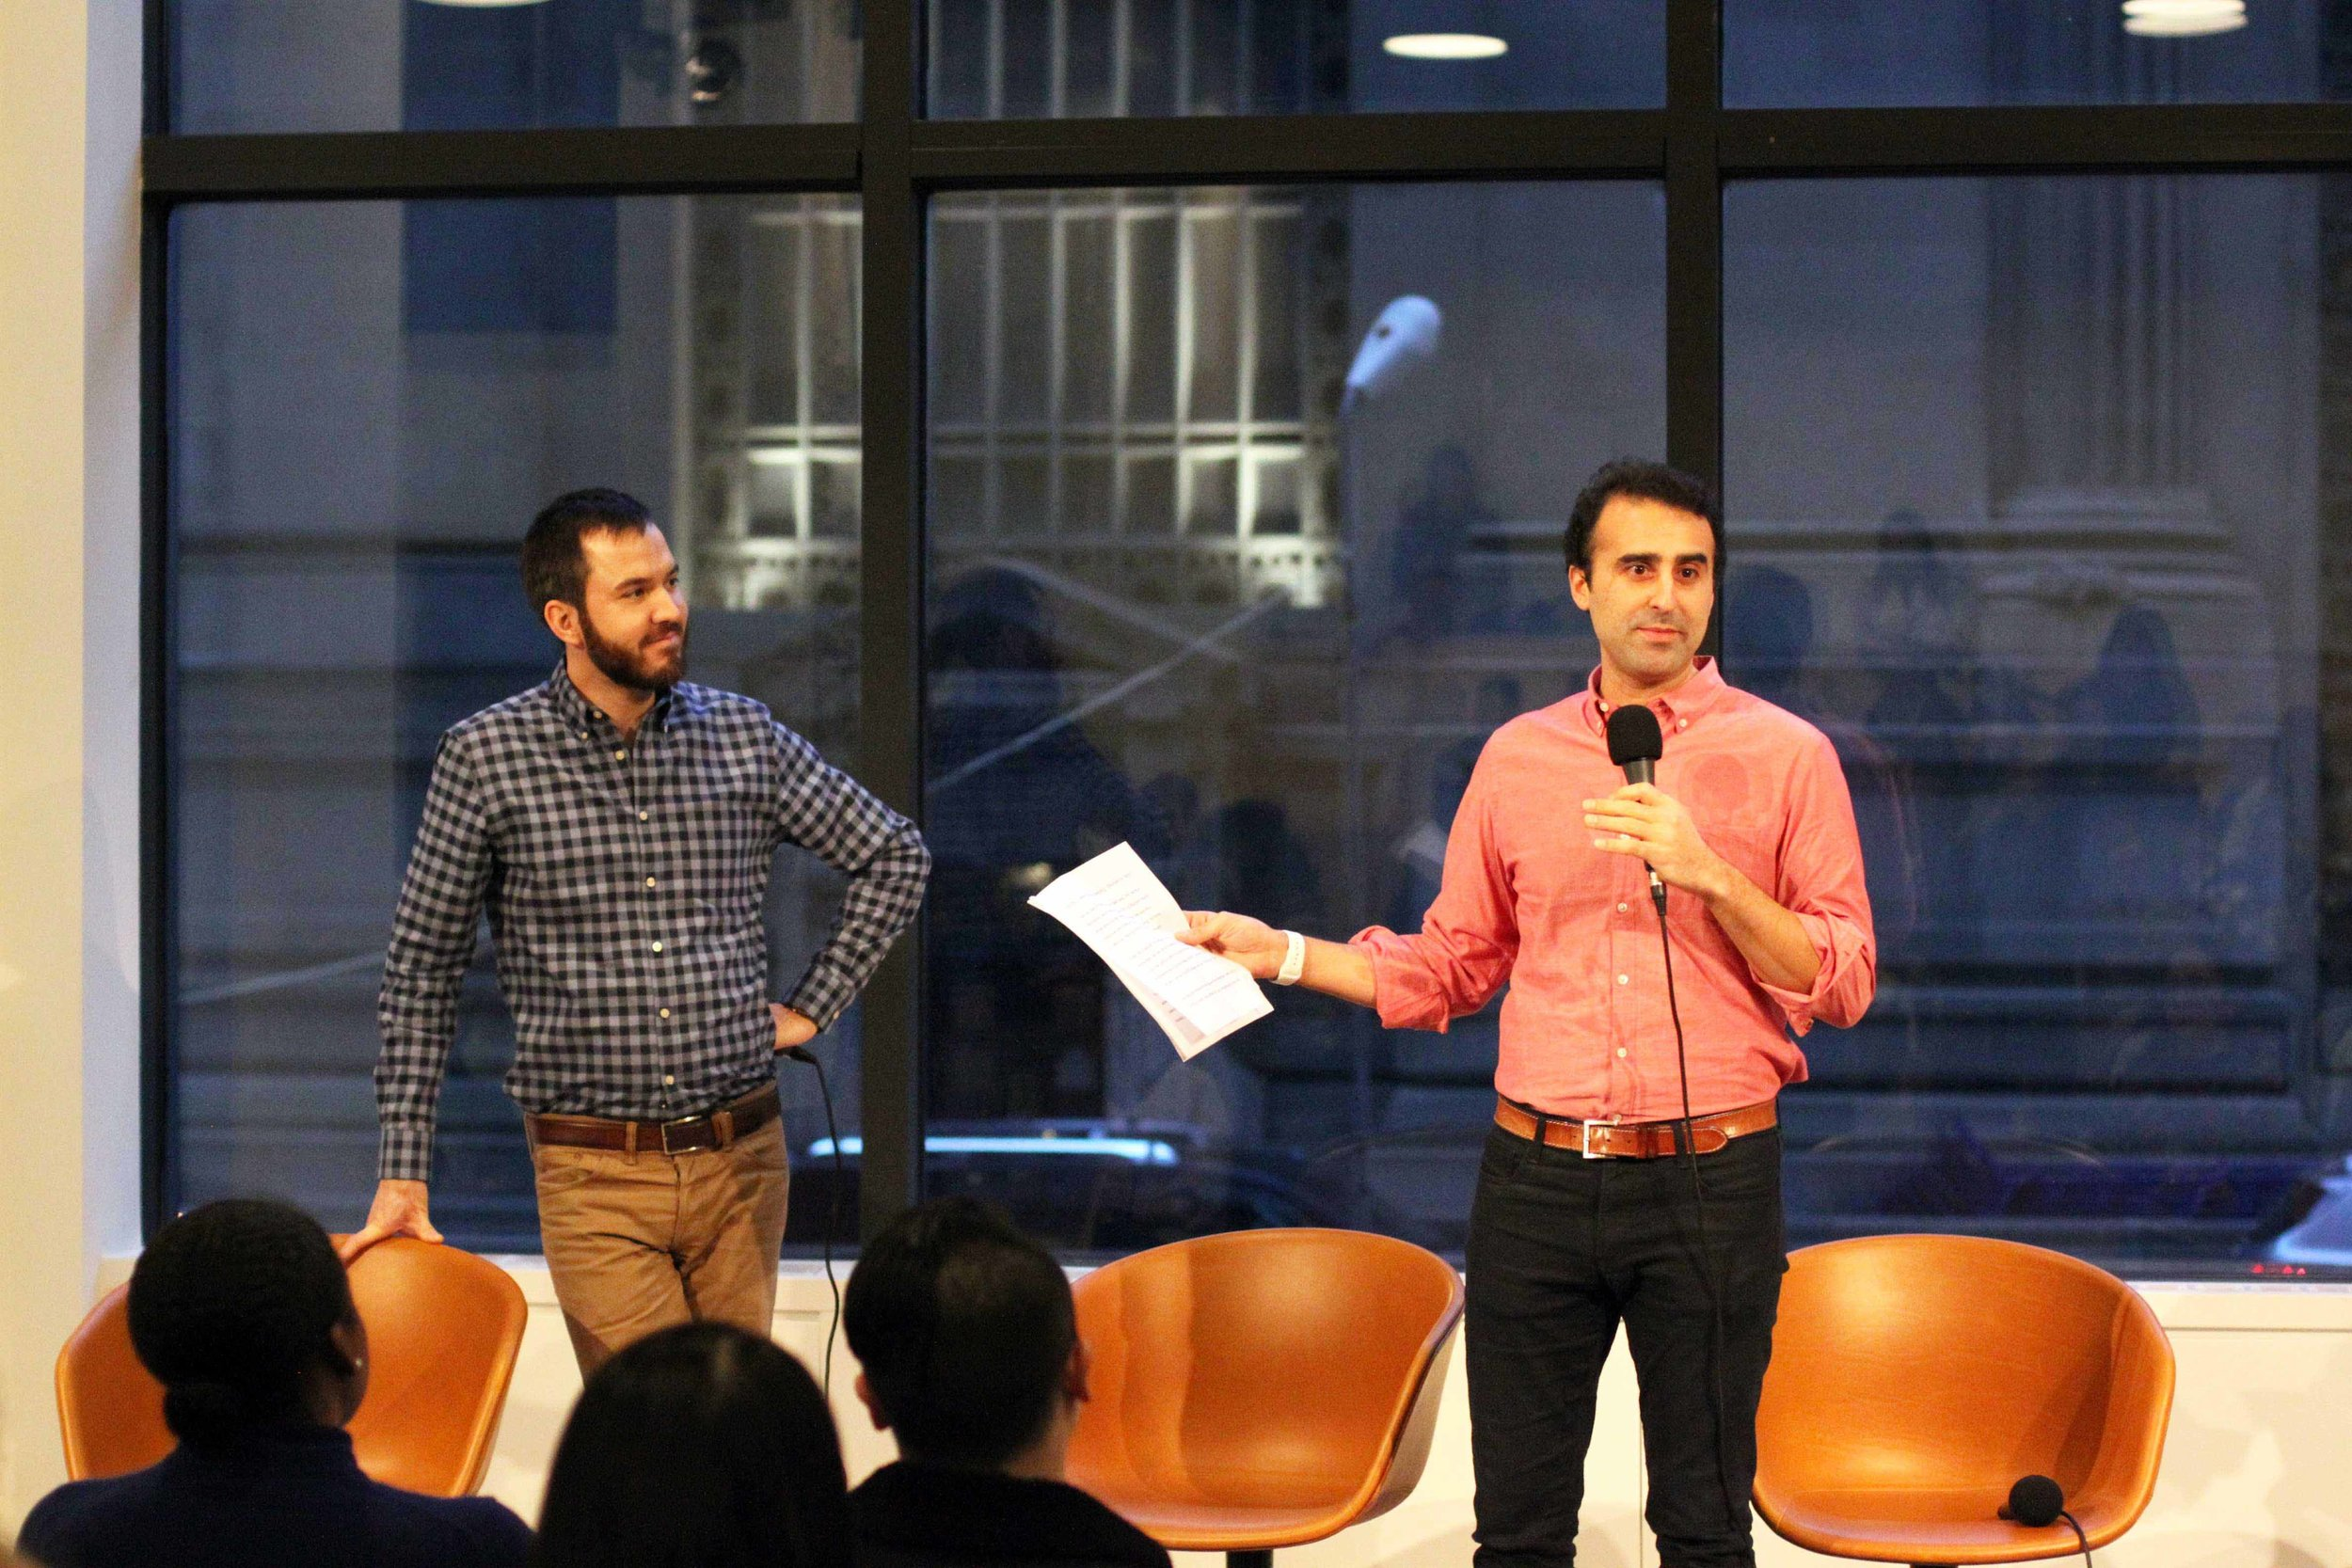 Matt Harrigan (left) co-founder and CEO of Company and Alexi Nazem (right) with co-founder and CEO of Nomad open the event. Picture: Nick Weinberg